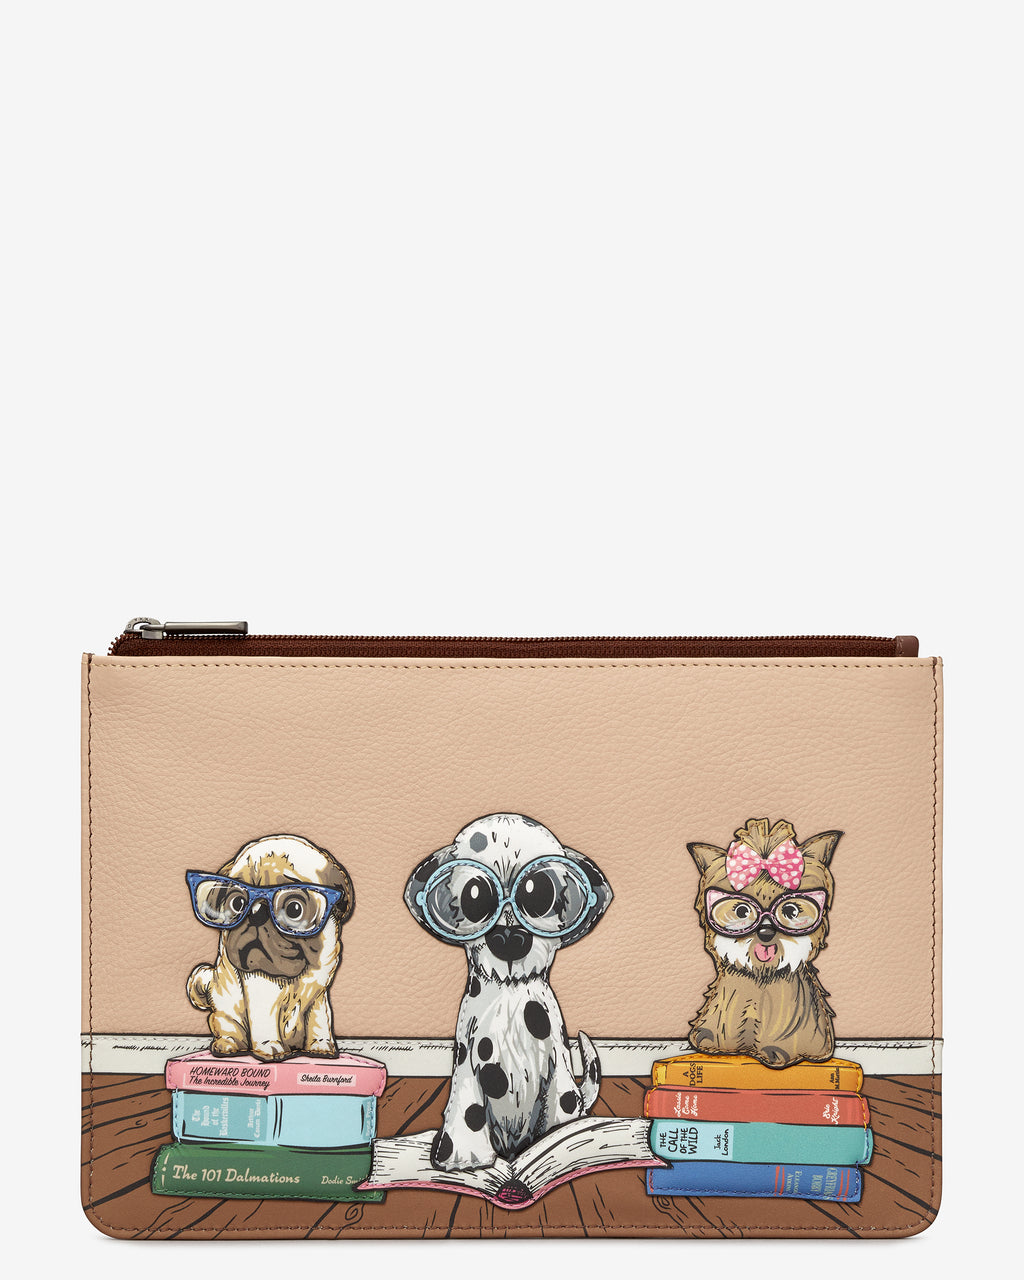 Bookhound Gang Zip Top Leather Pouch